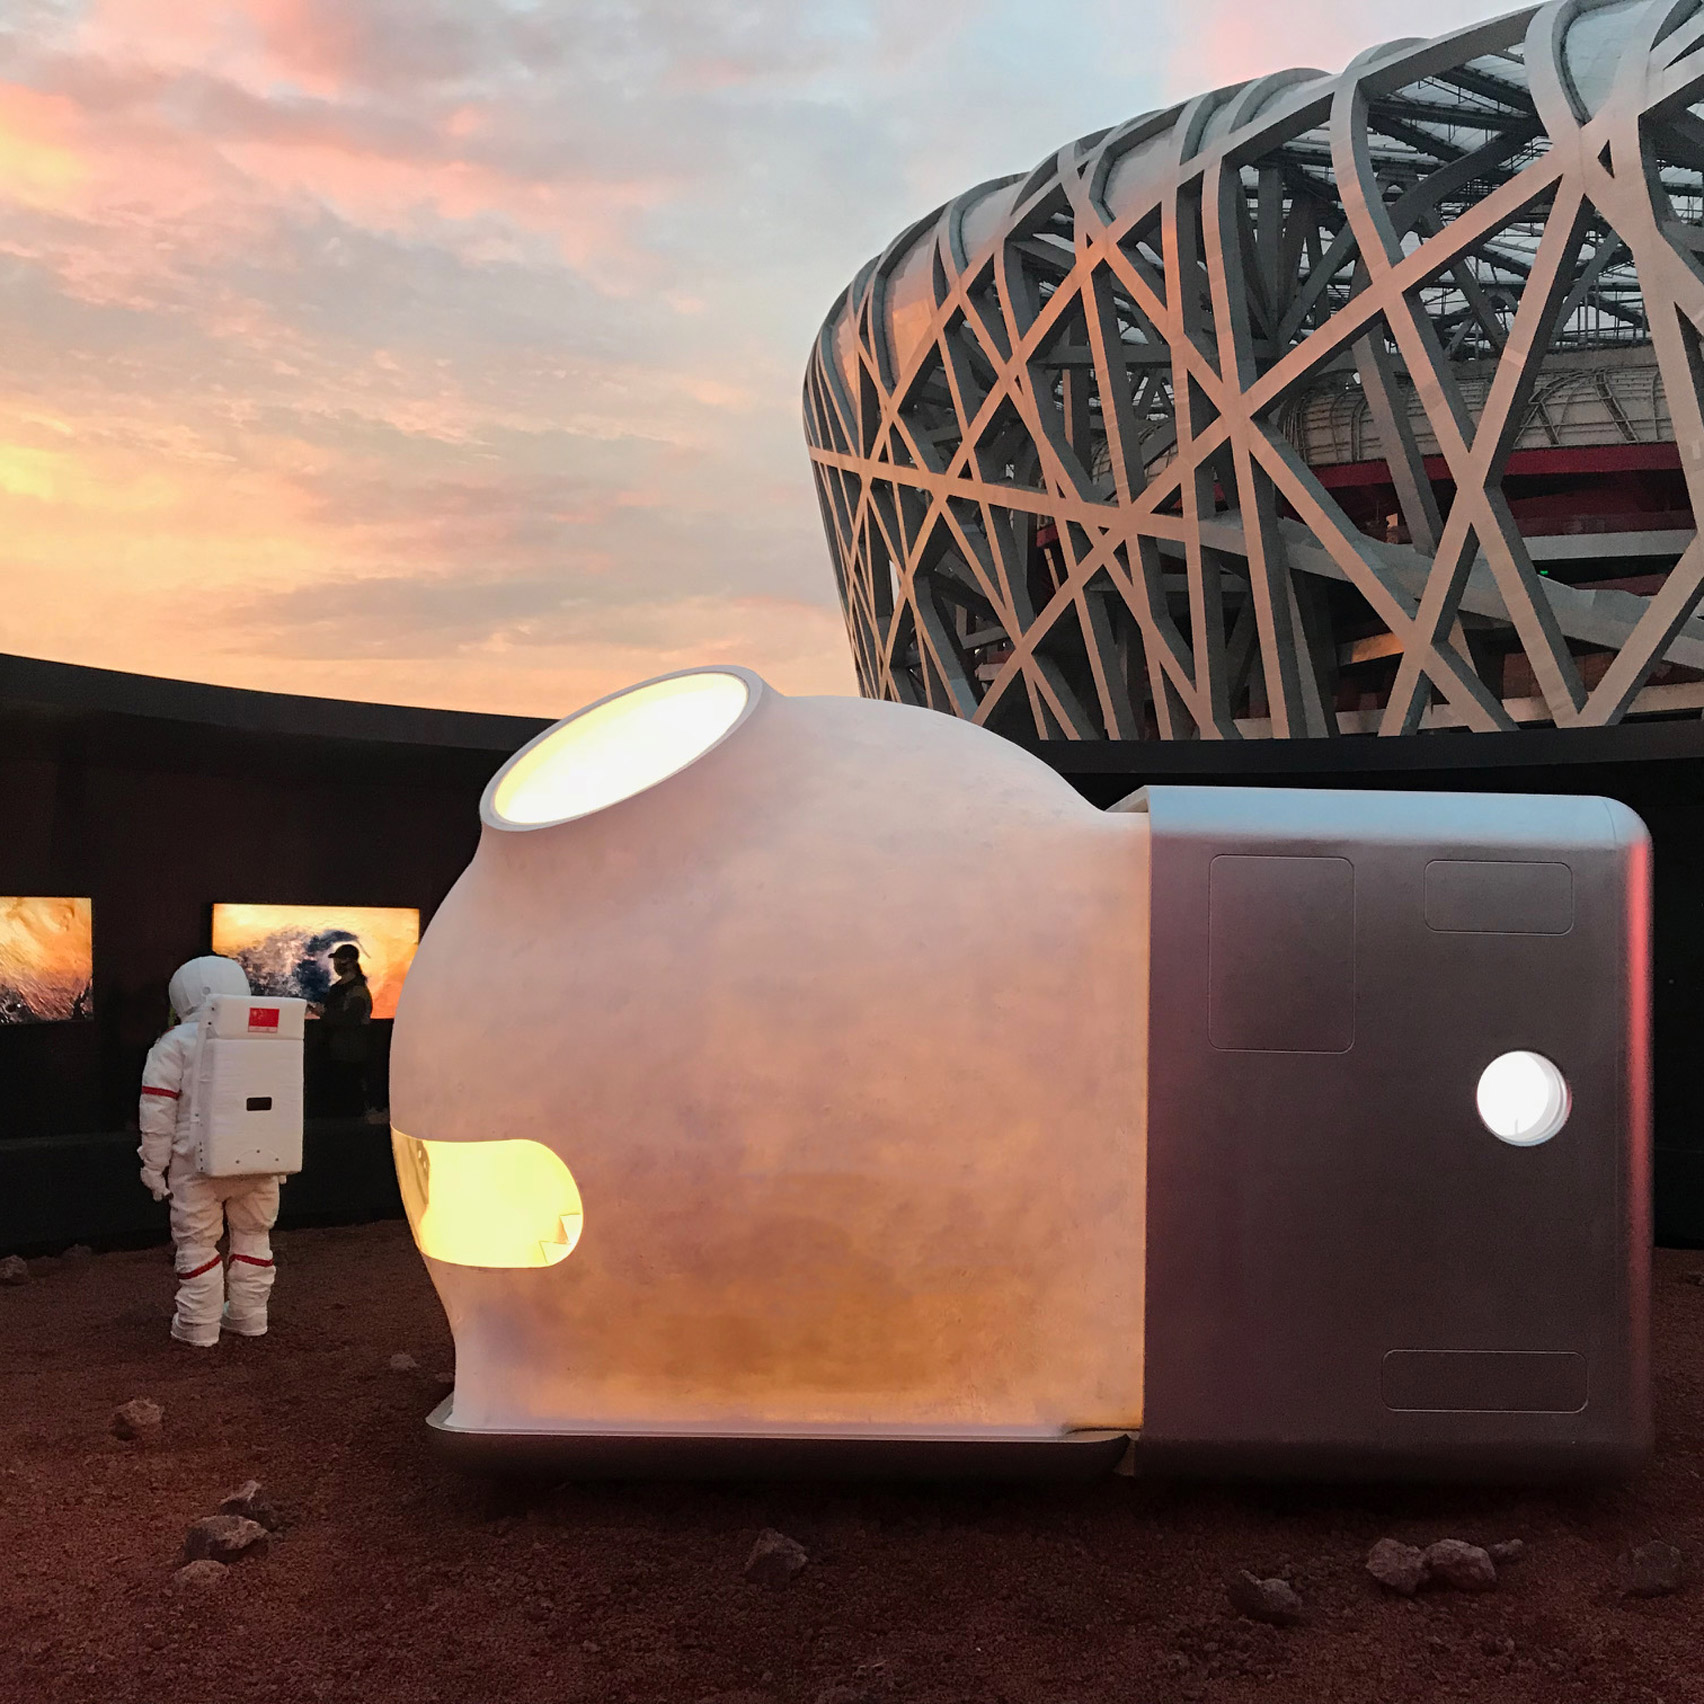 D Printing Exhibition China : Architects imagine chinese home of the future for china house